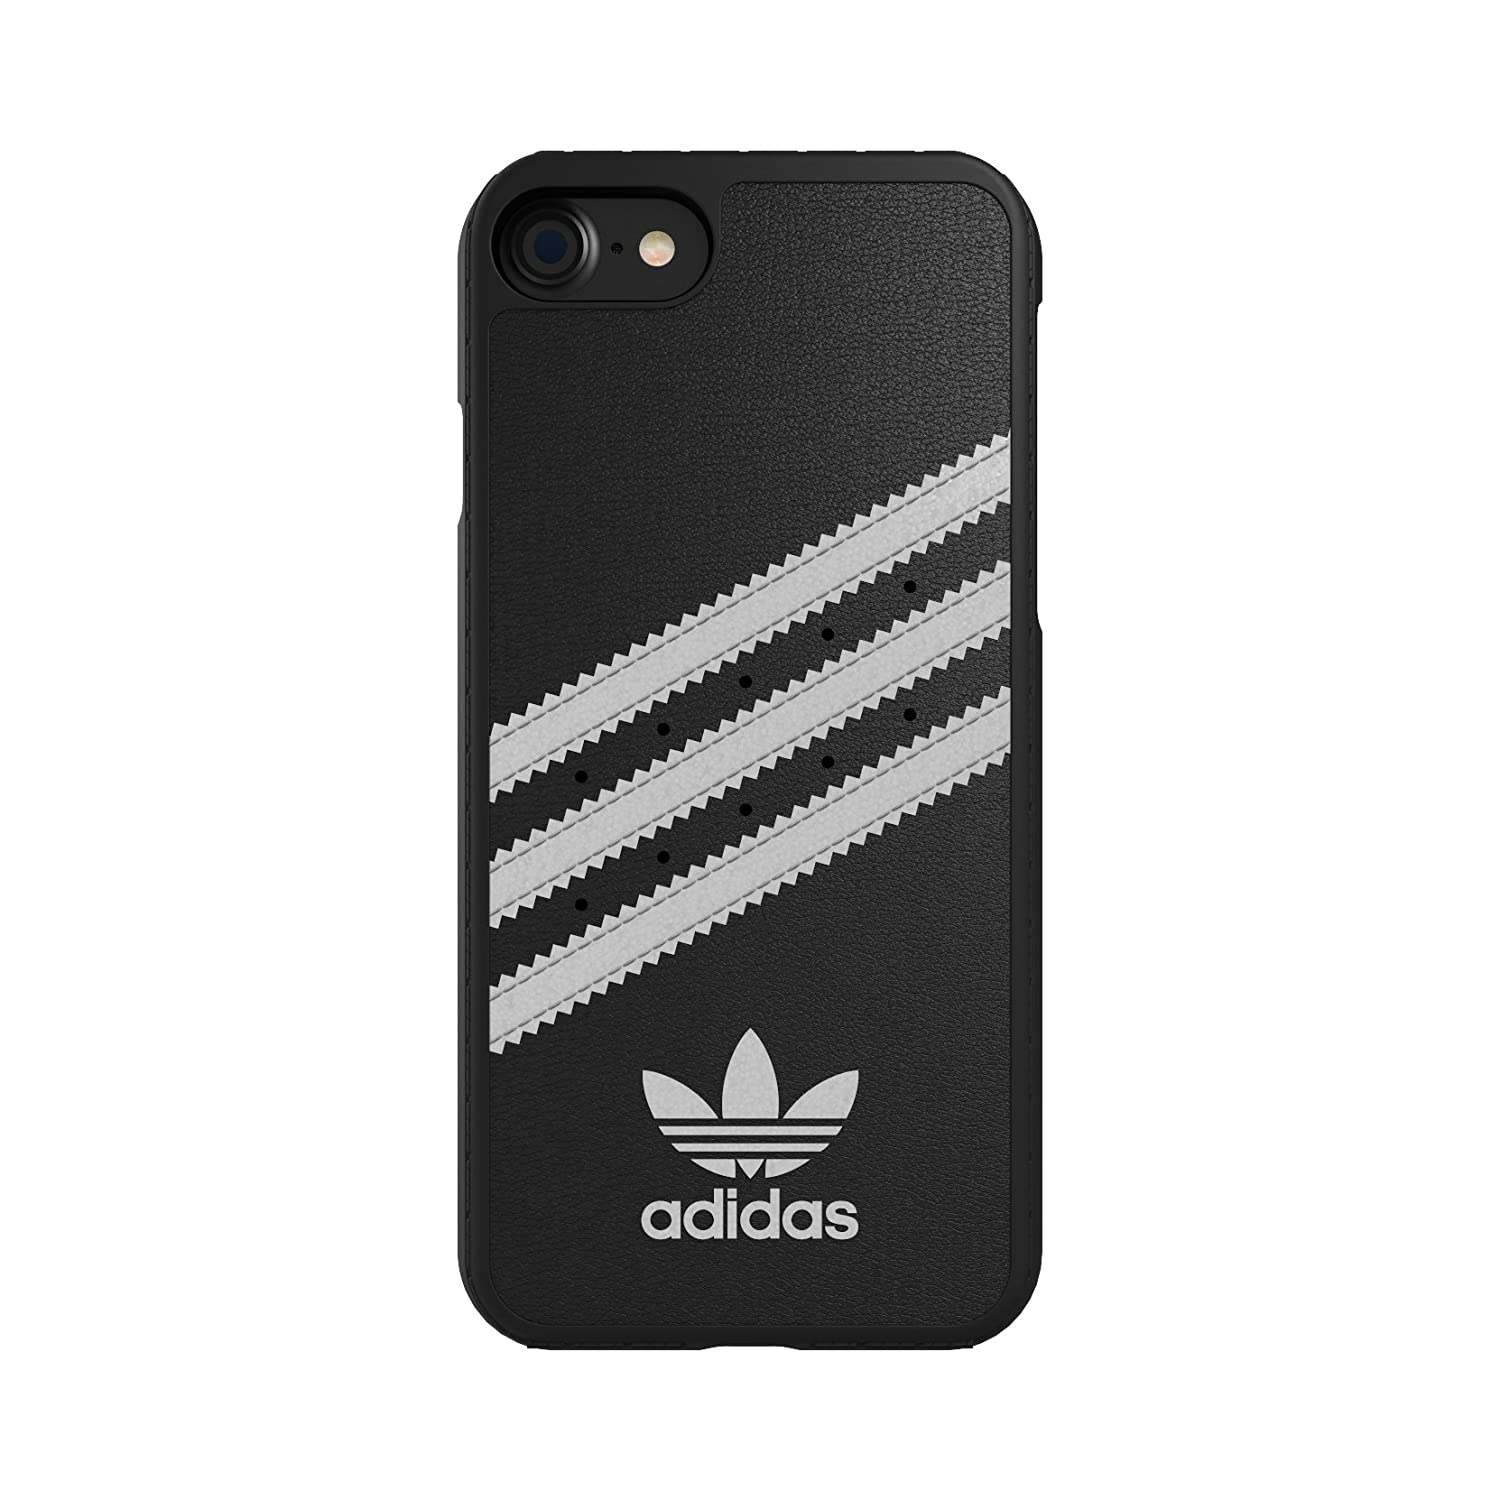 carcasas iphone 7 plus adidas